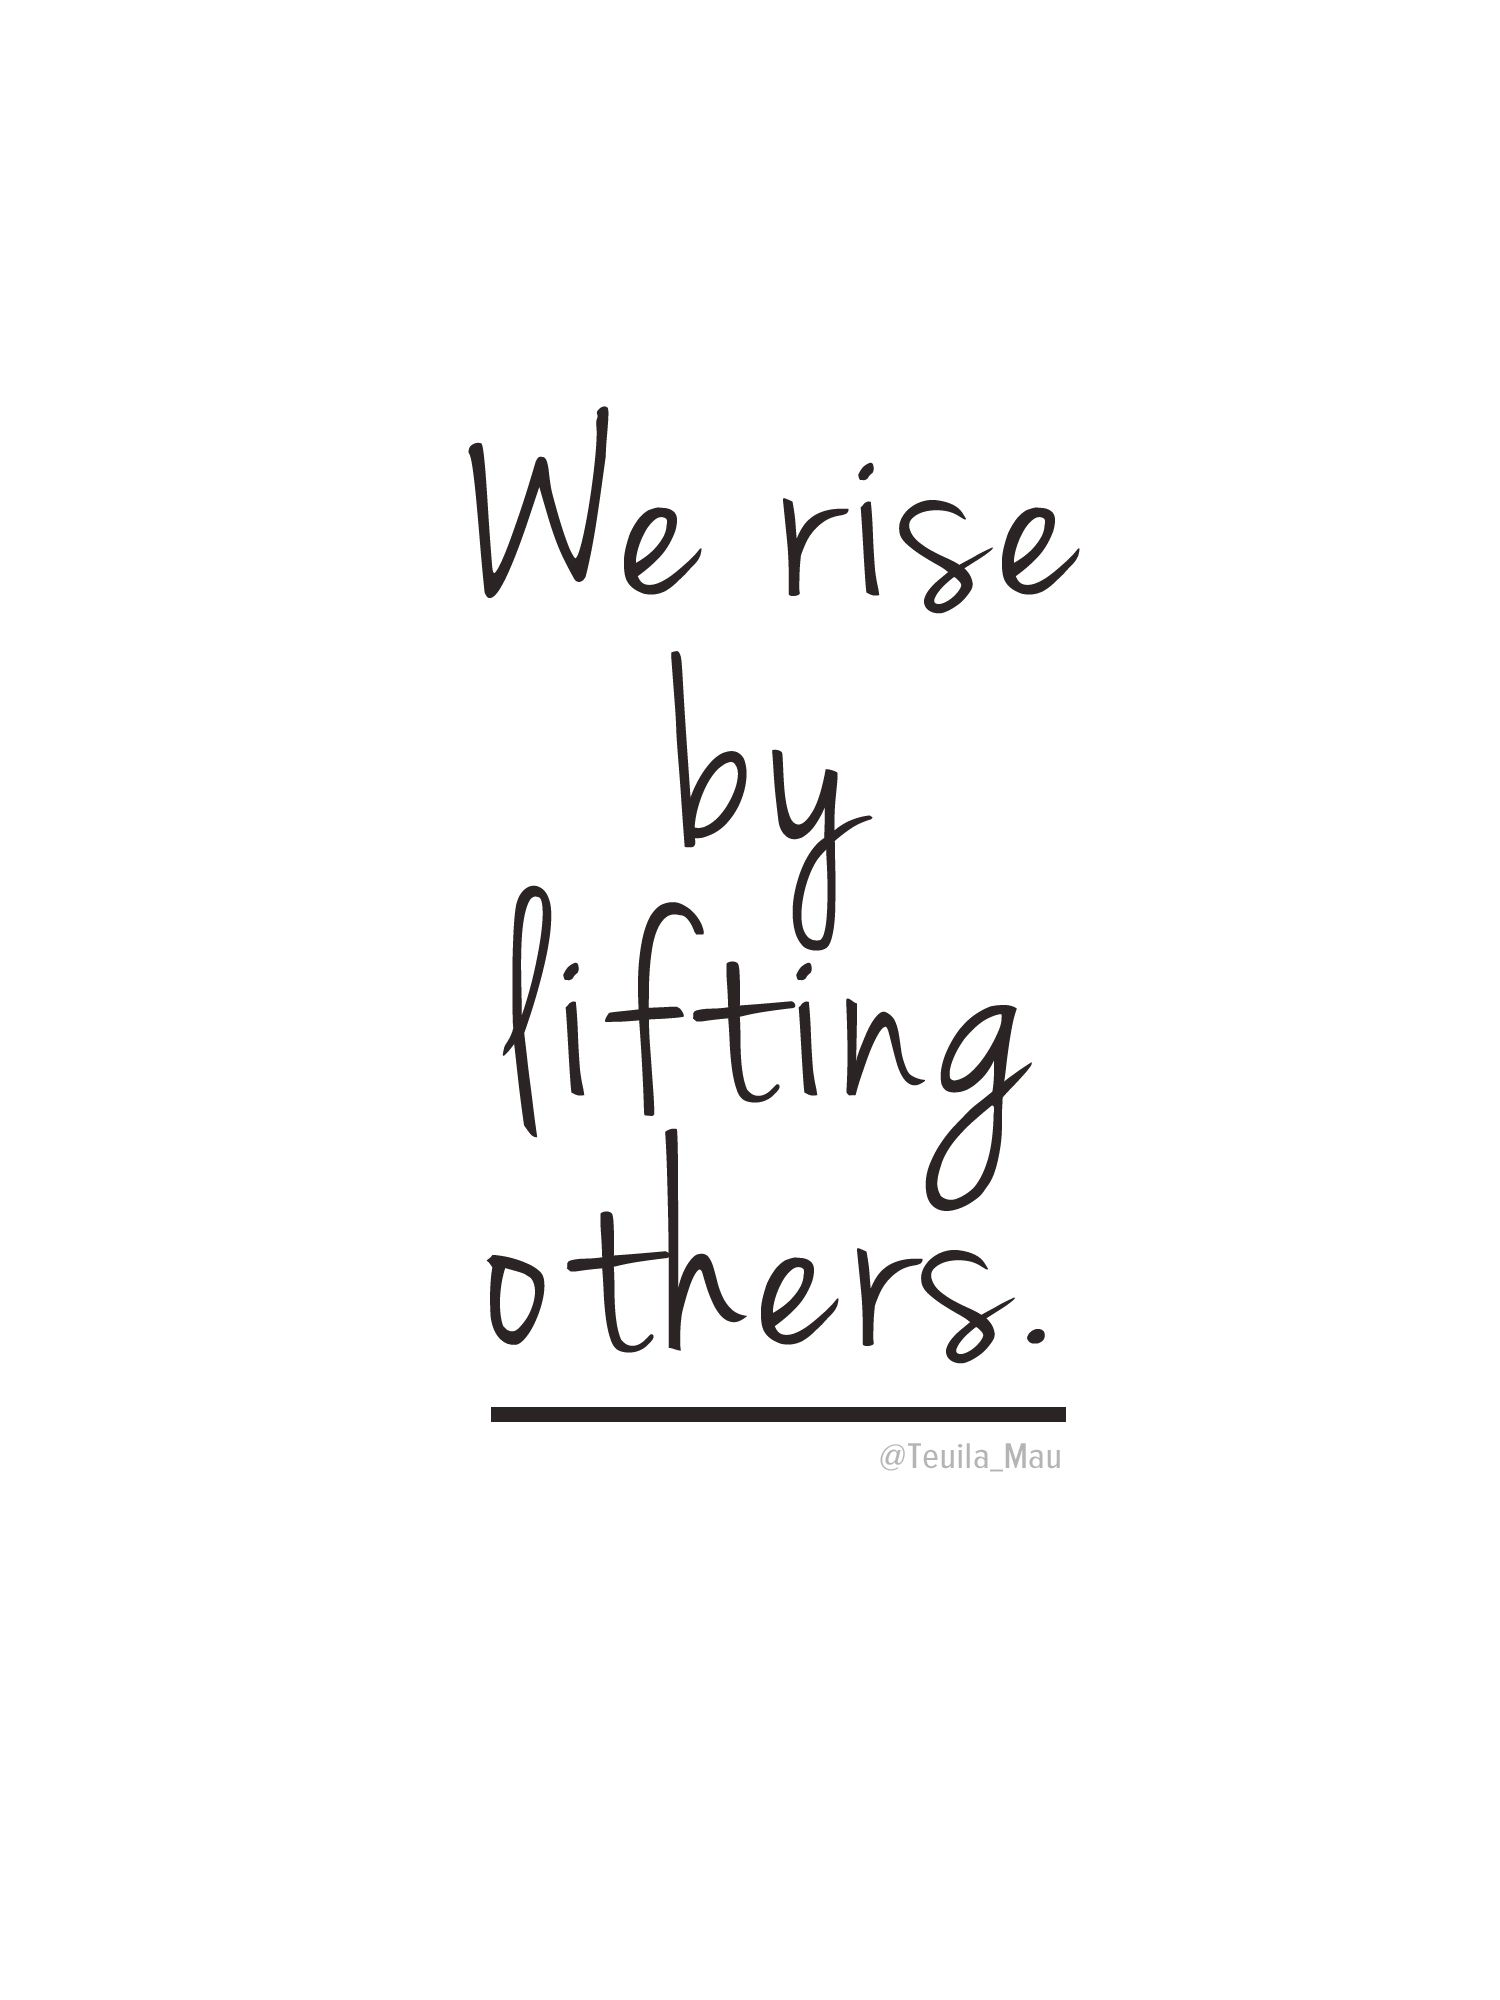 Rise by lifting others short wise quotes motivational short quotes short qoutes short